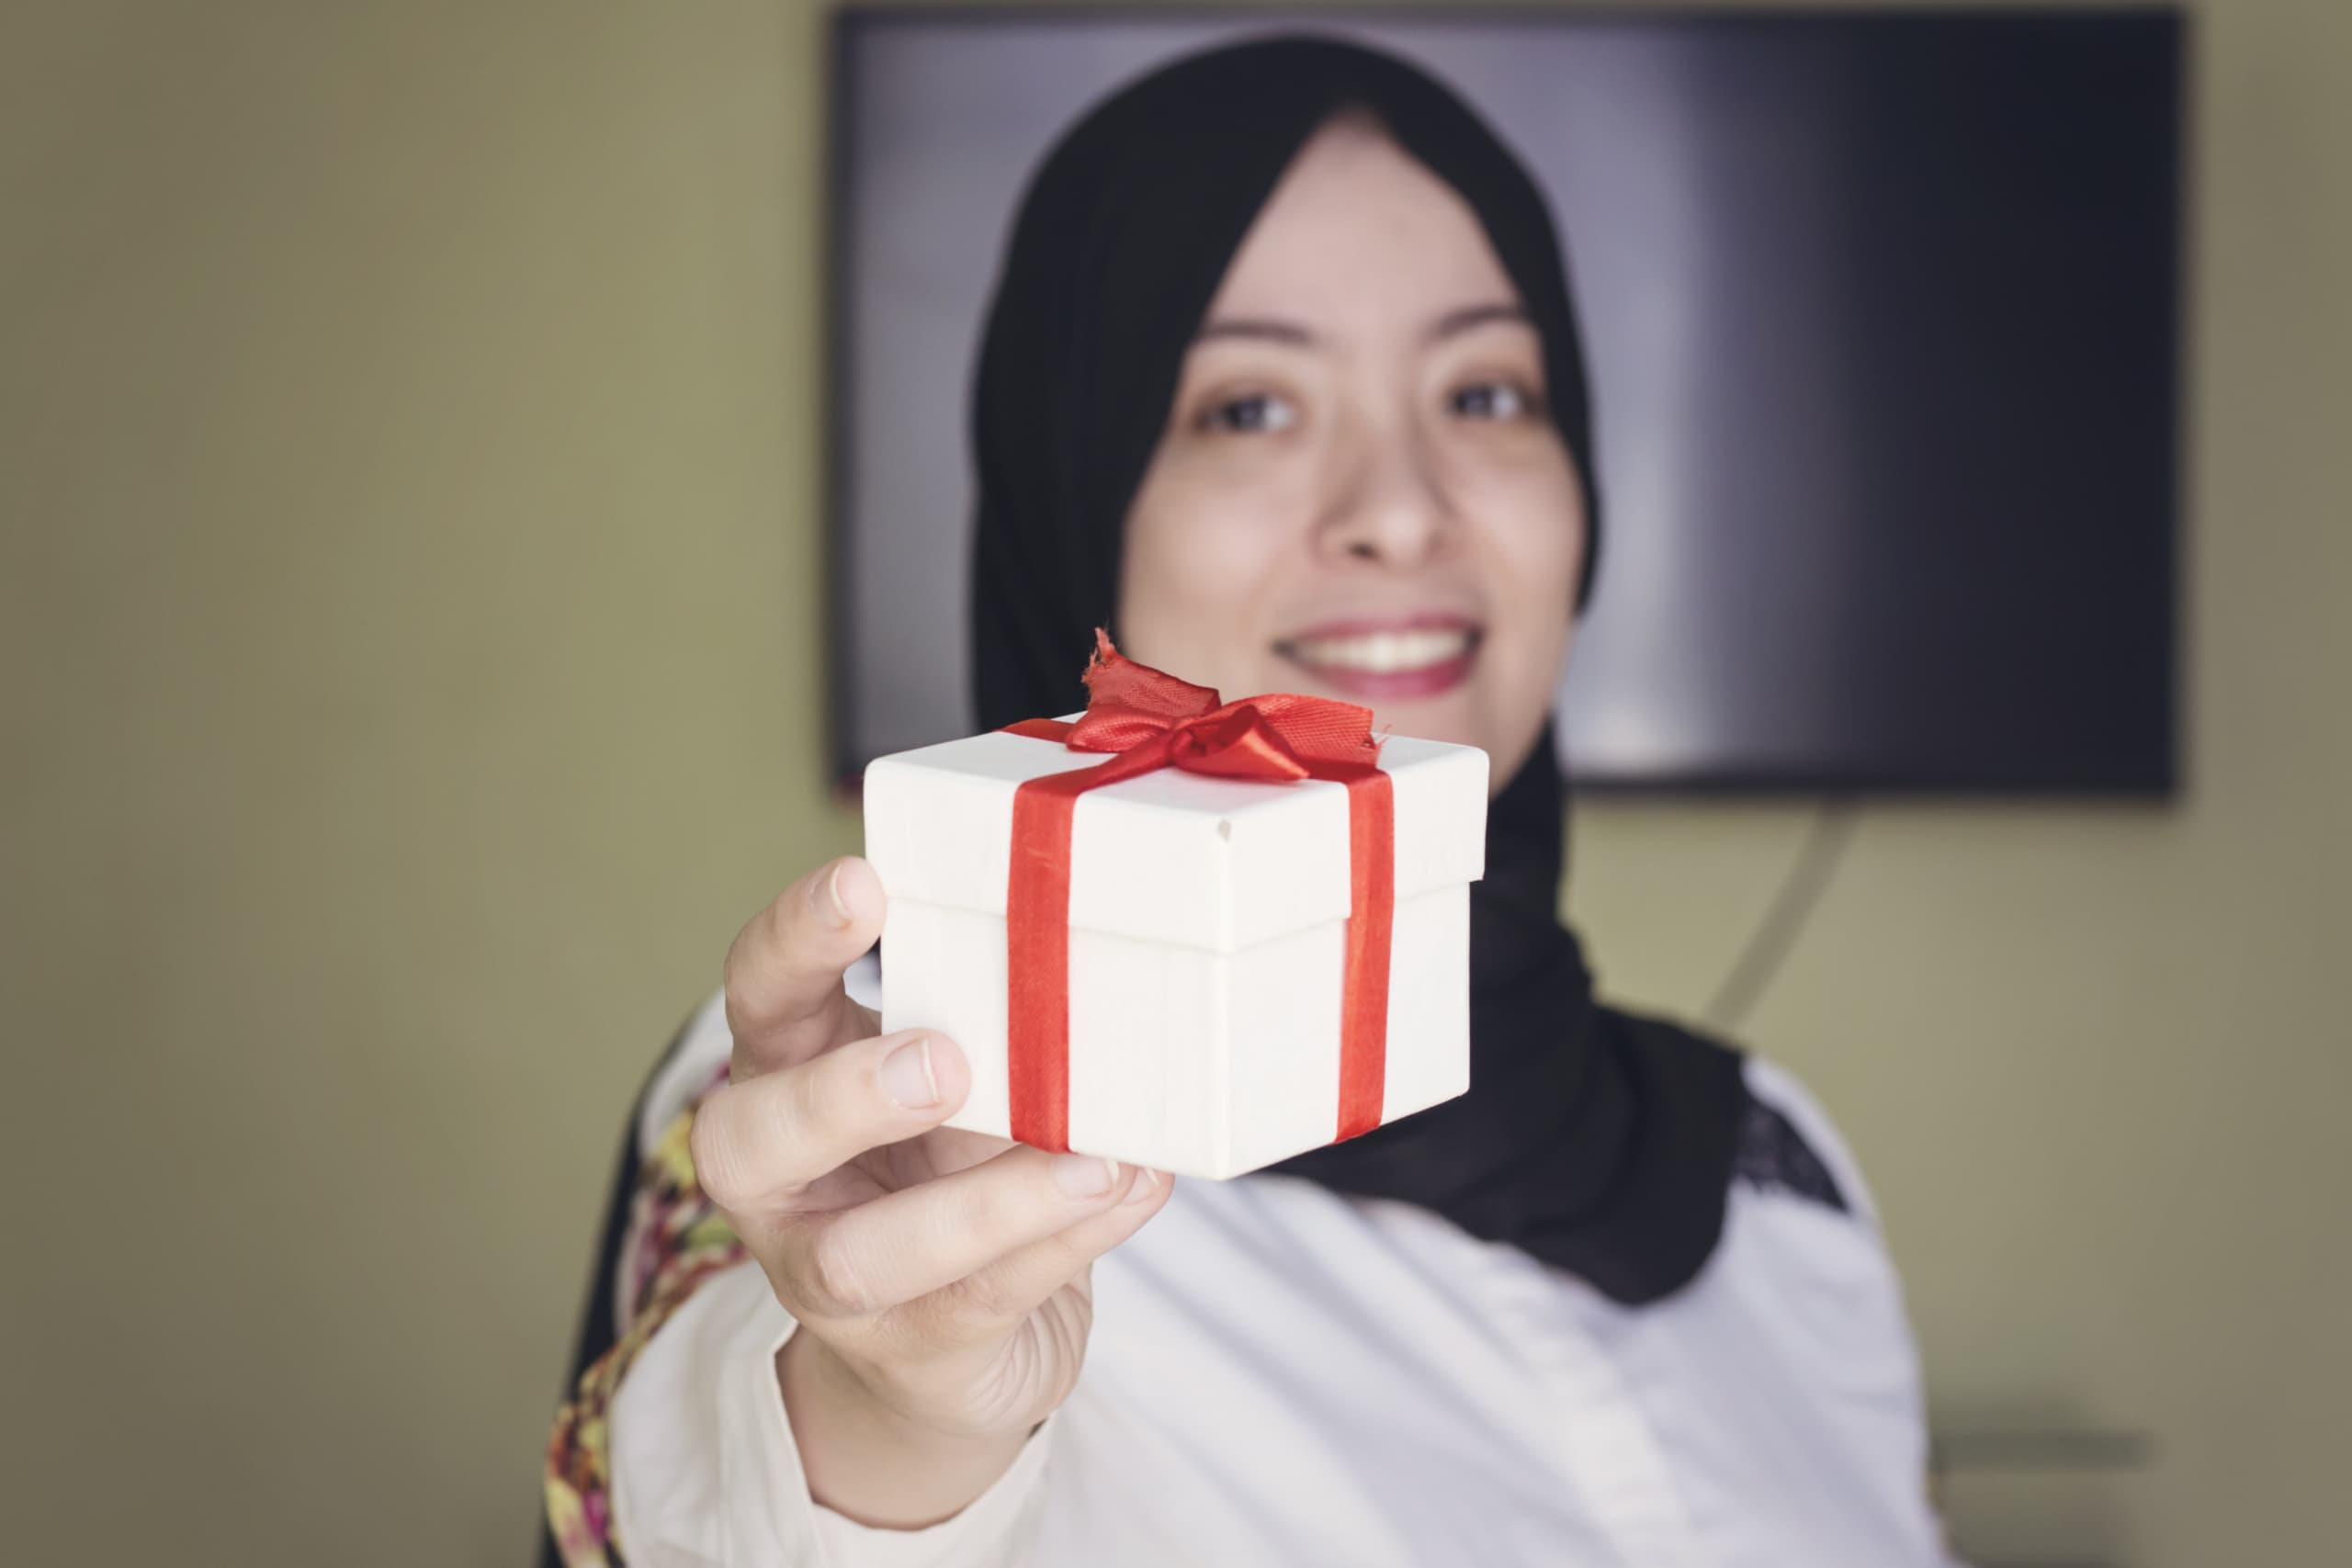 Beautiful,Muslim,Woman,With,Cheerful,Smile,Give,You,White,Gift